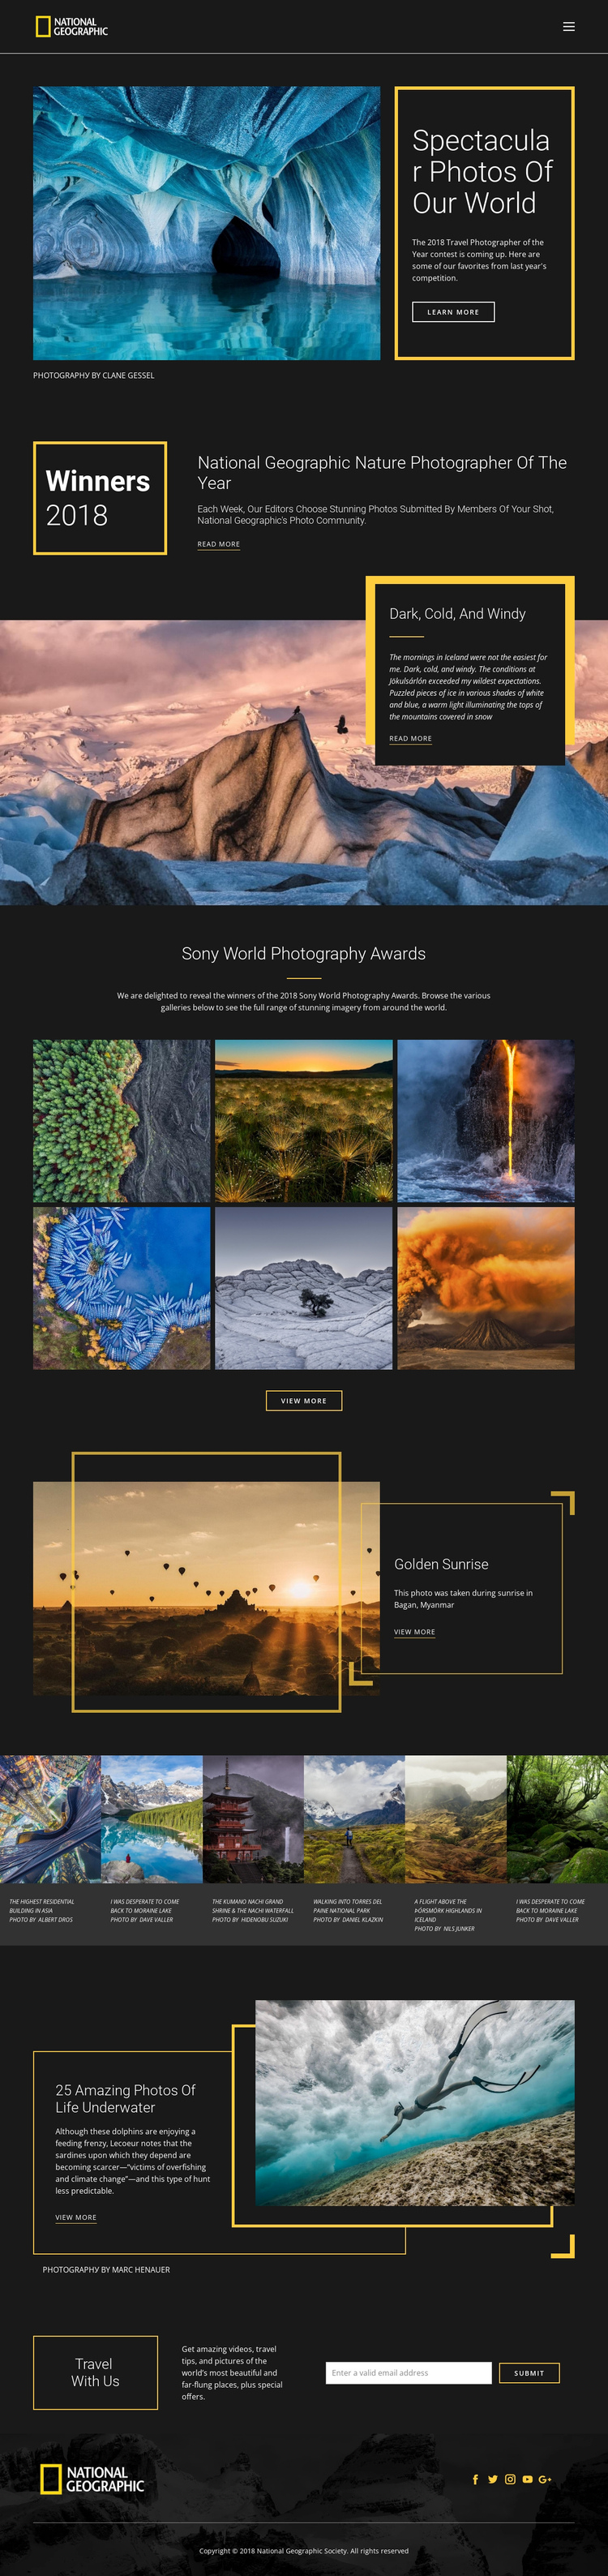 Pictures of nature Website Builder Software